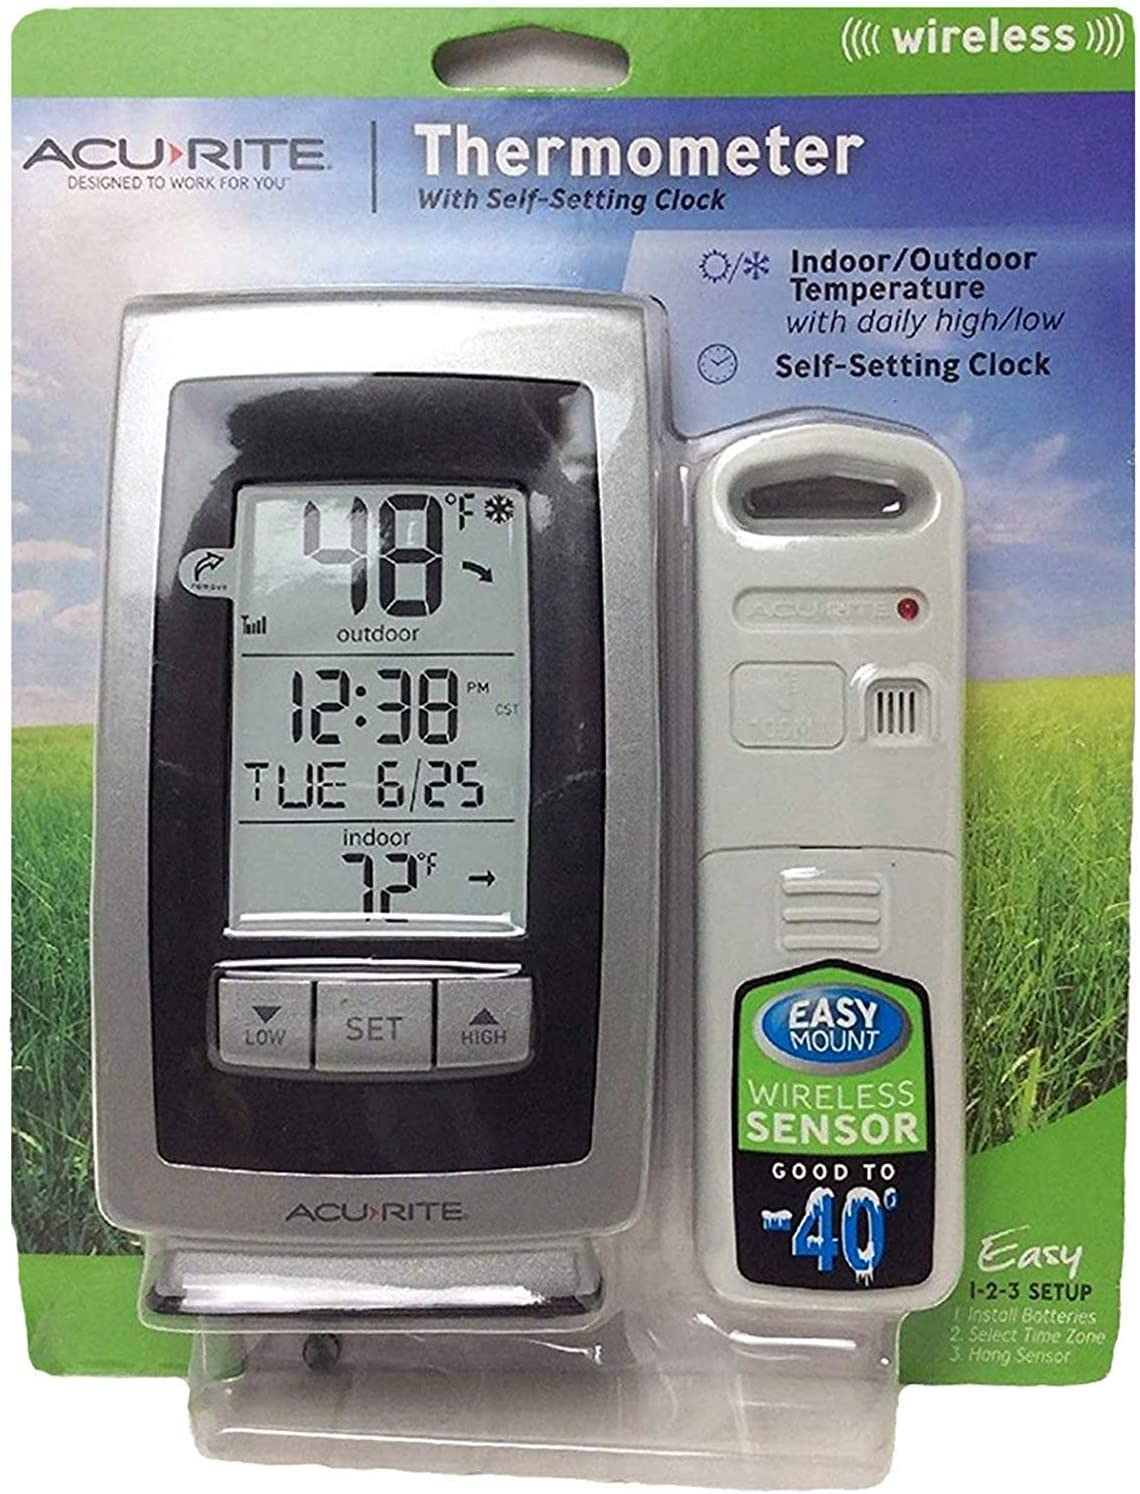 Amazon Com Acurite Digital Indoor Outdoor Wireless Thermometer 00754w4 With Self Setting Clock And Daily High Low Garden Outdoor